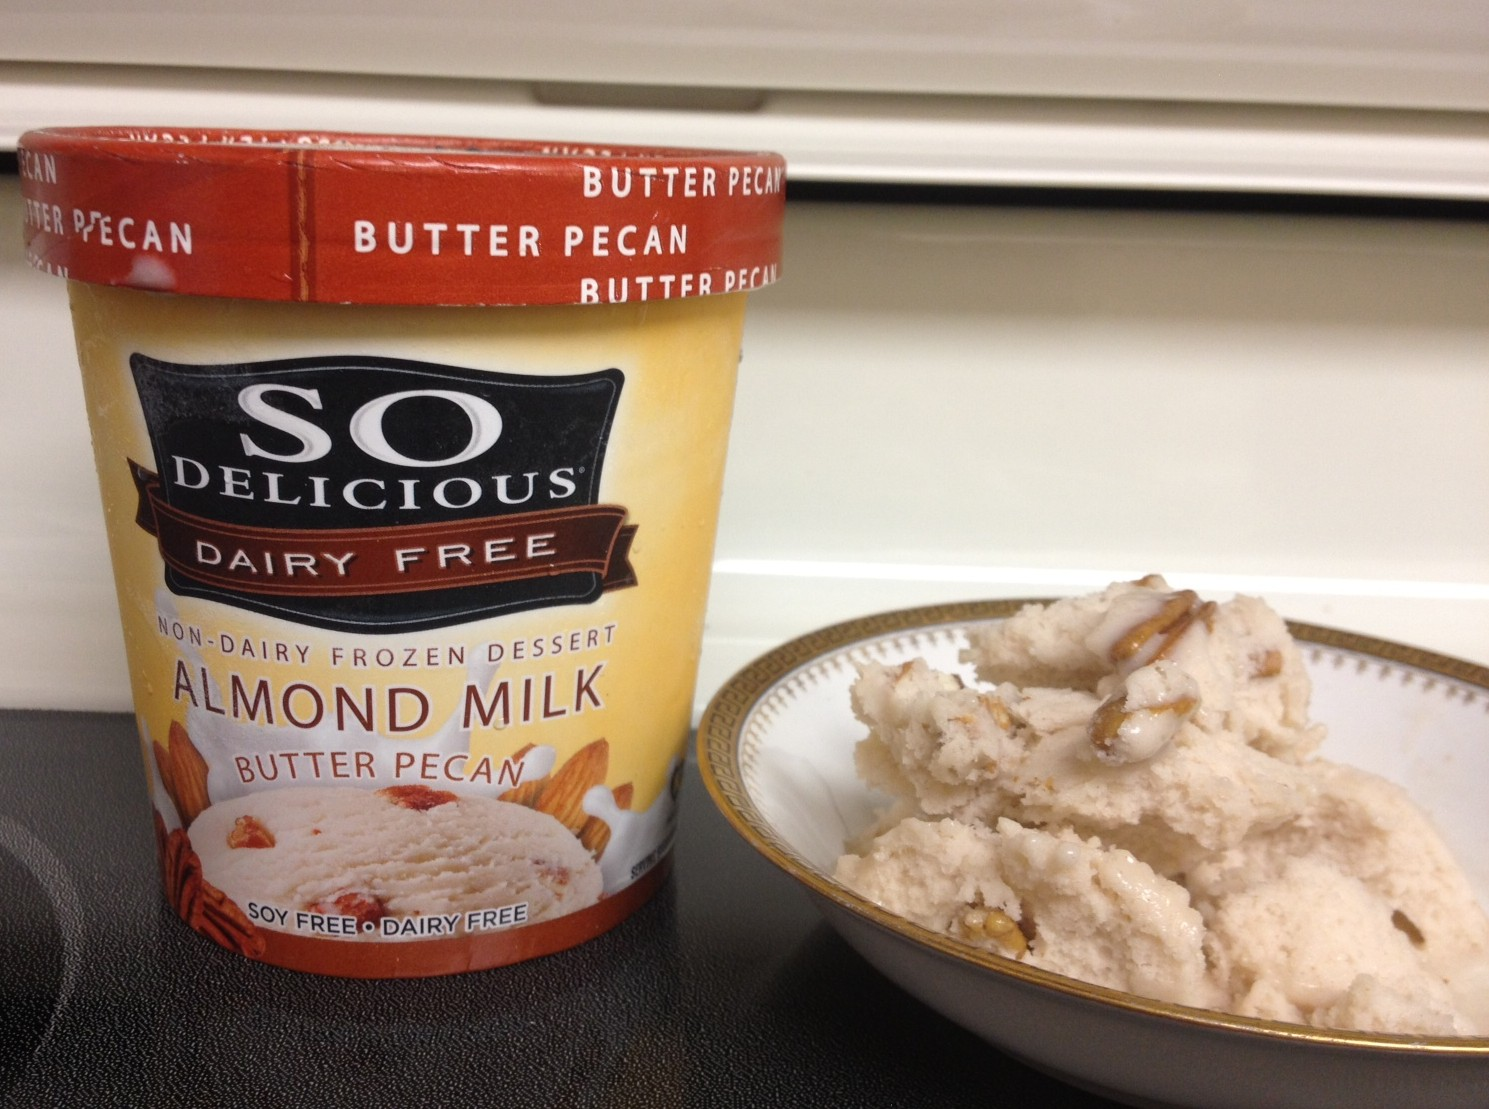 So Delicious Dairy Free Launches New Almond Milk Products!